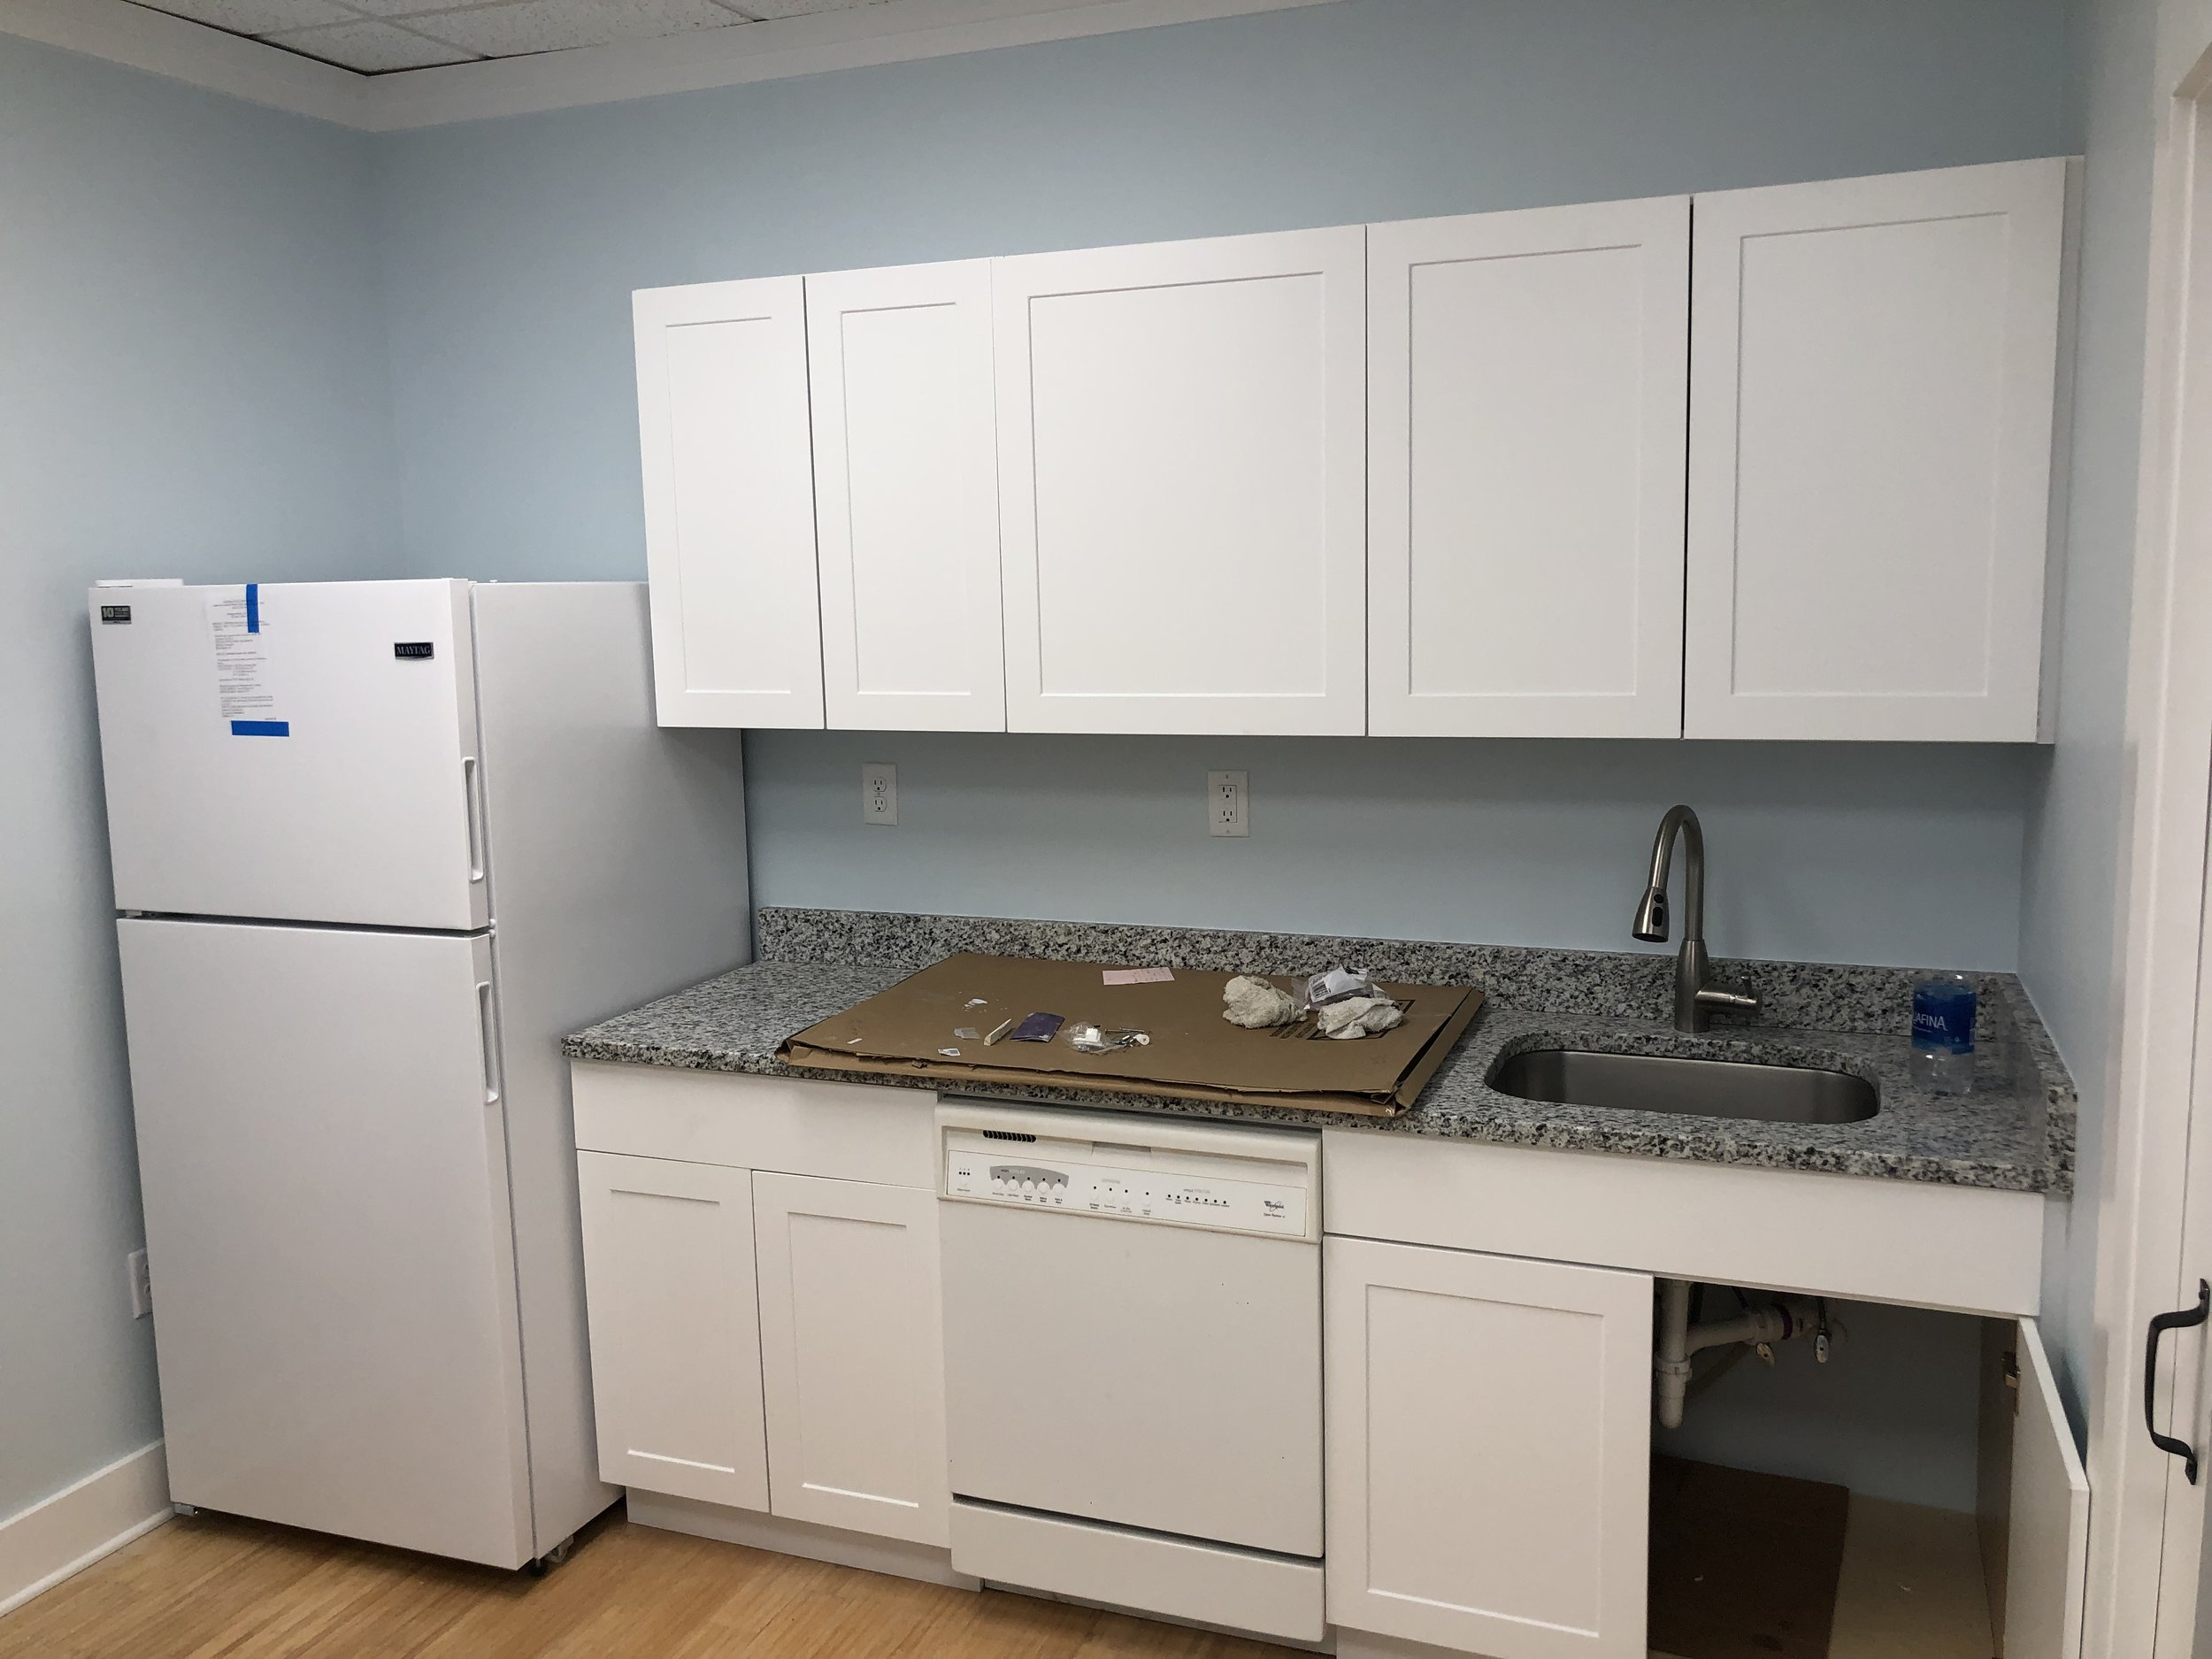 Kitchen area getting close to completion.